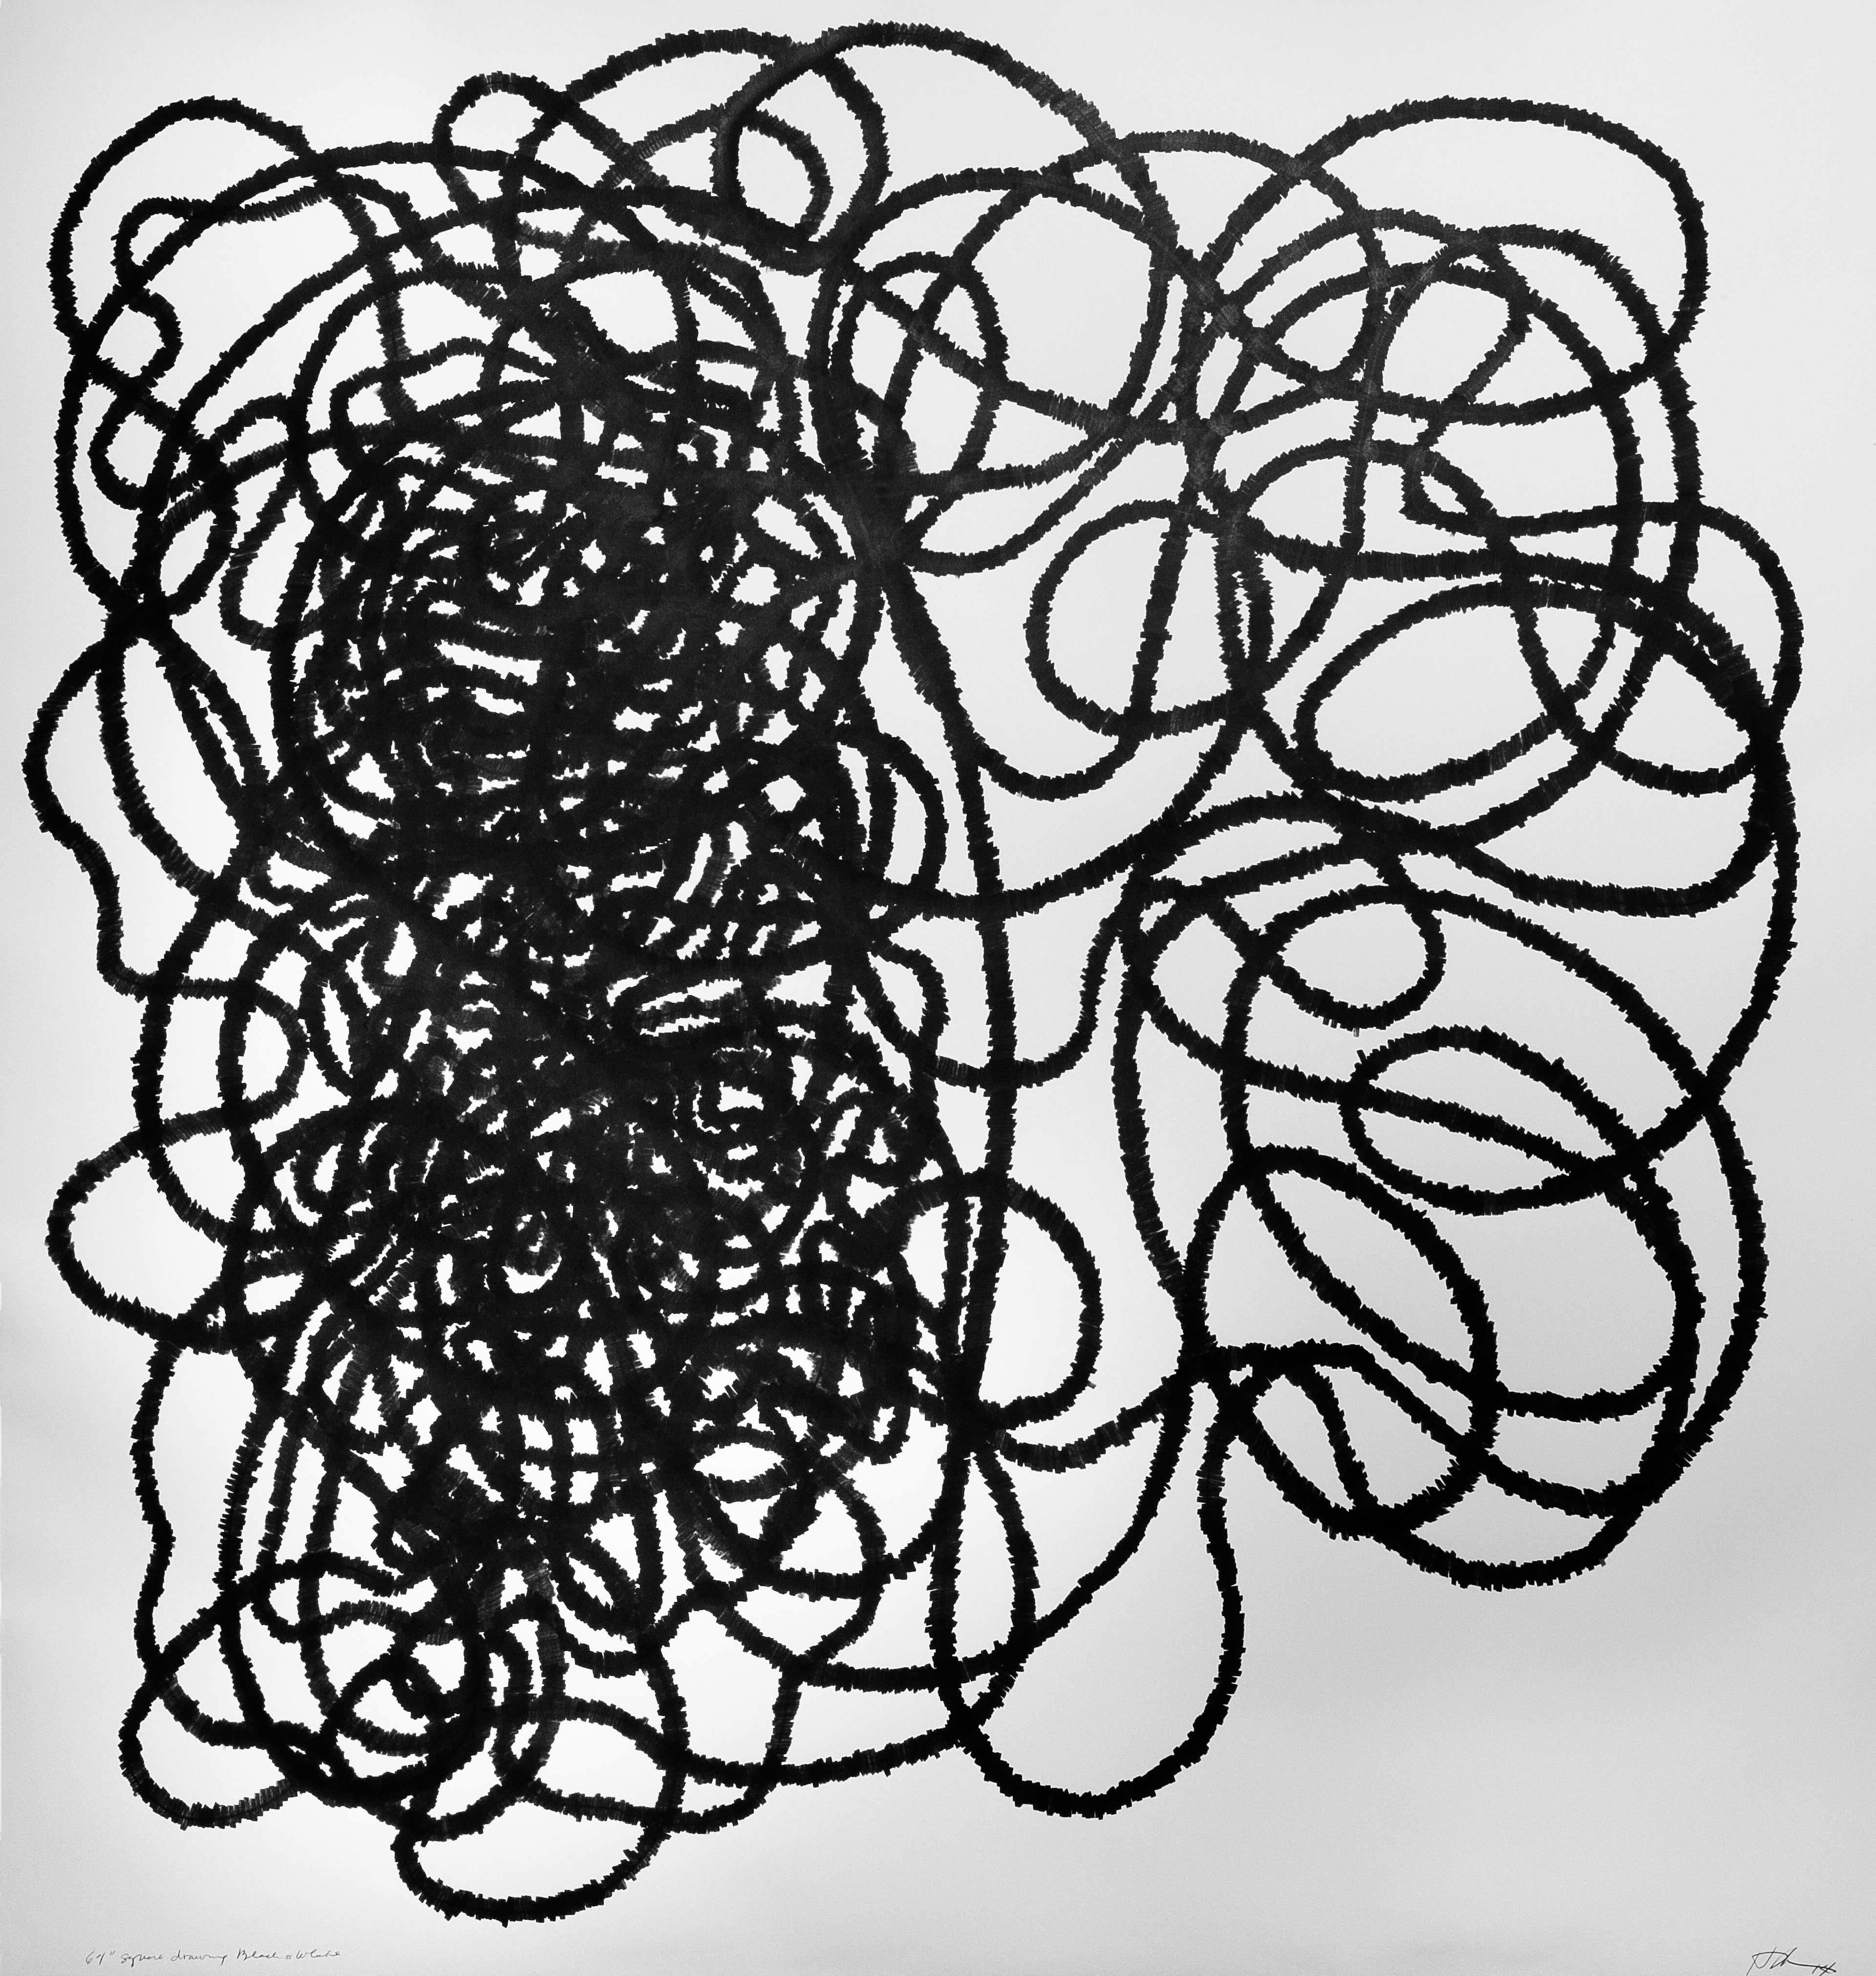 70 inch Square drawing Black on White, 2014